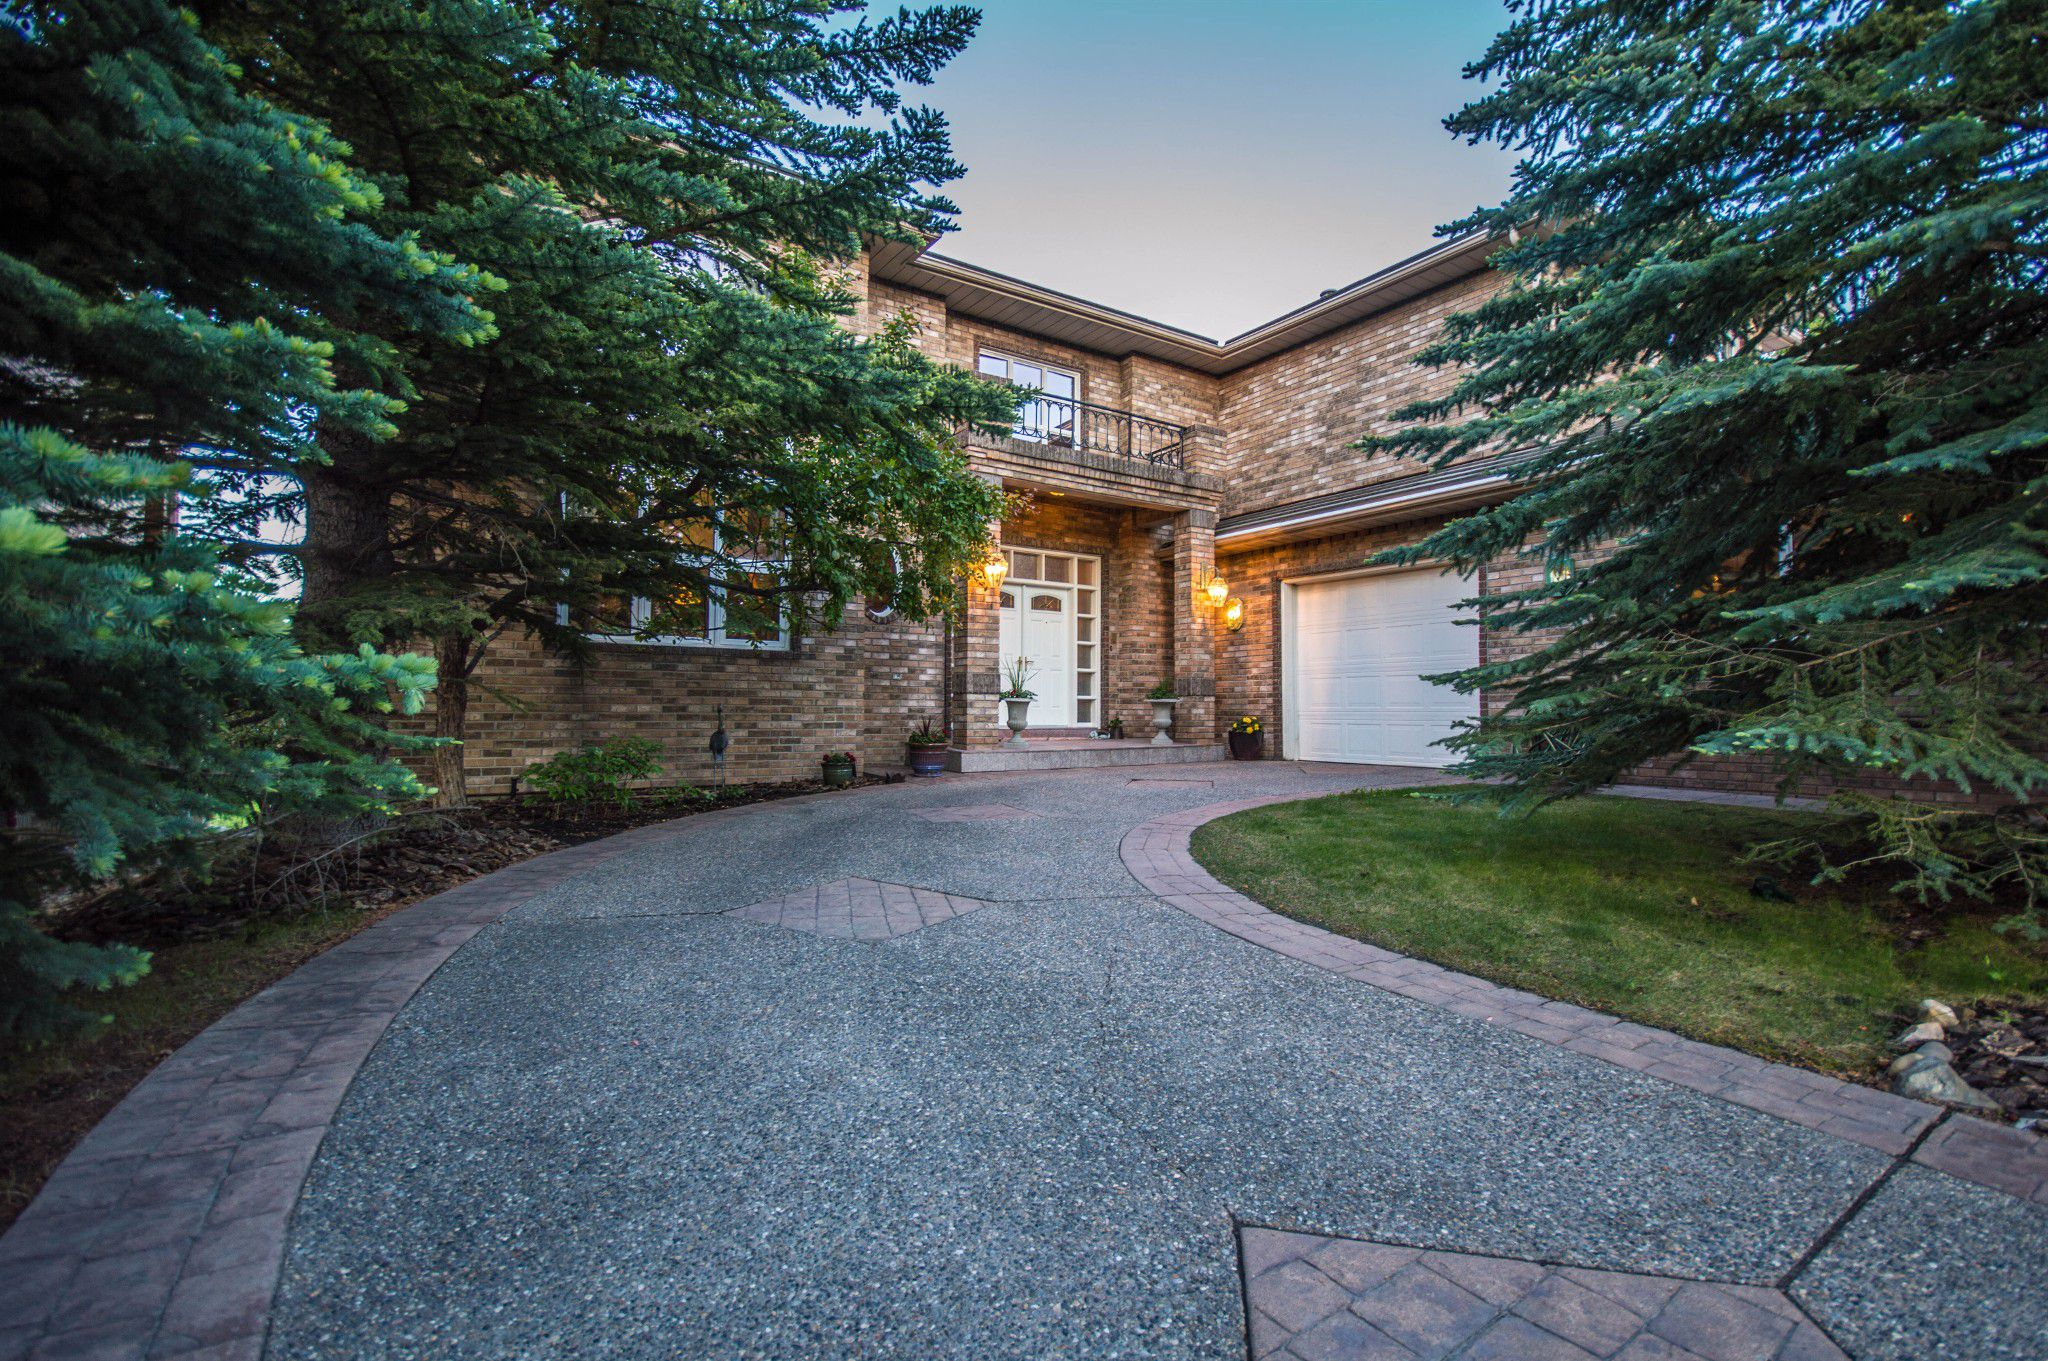 Main Photo: 72 Signatue Heights SW in Calgary: Signal Hill House for sale : MLS®# C4254661